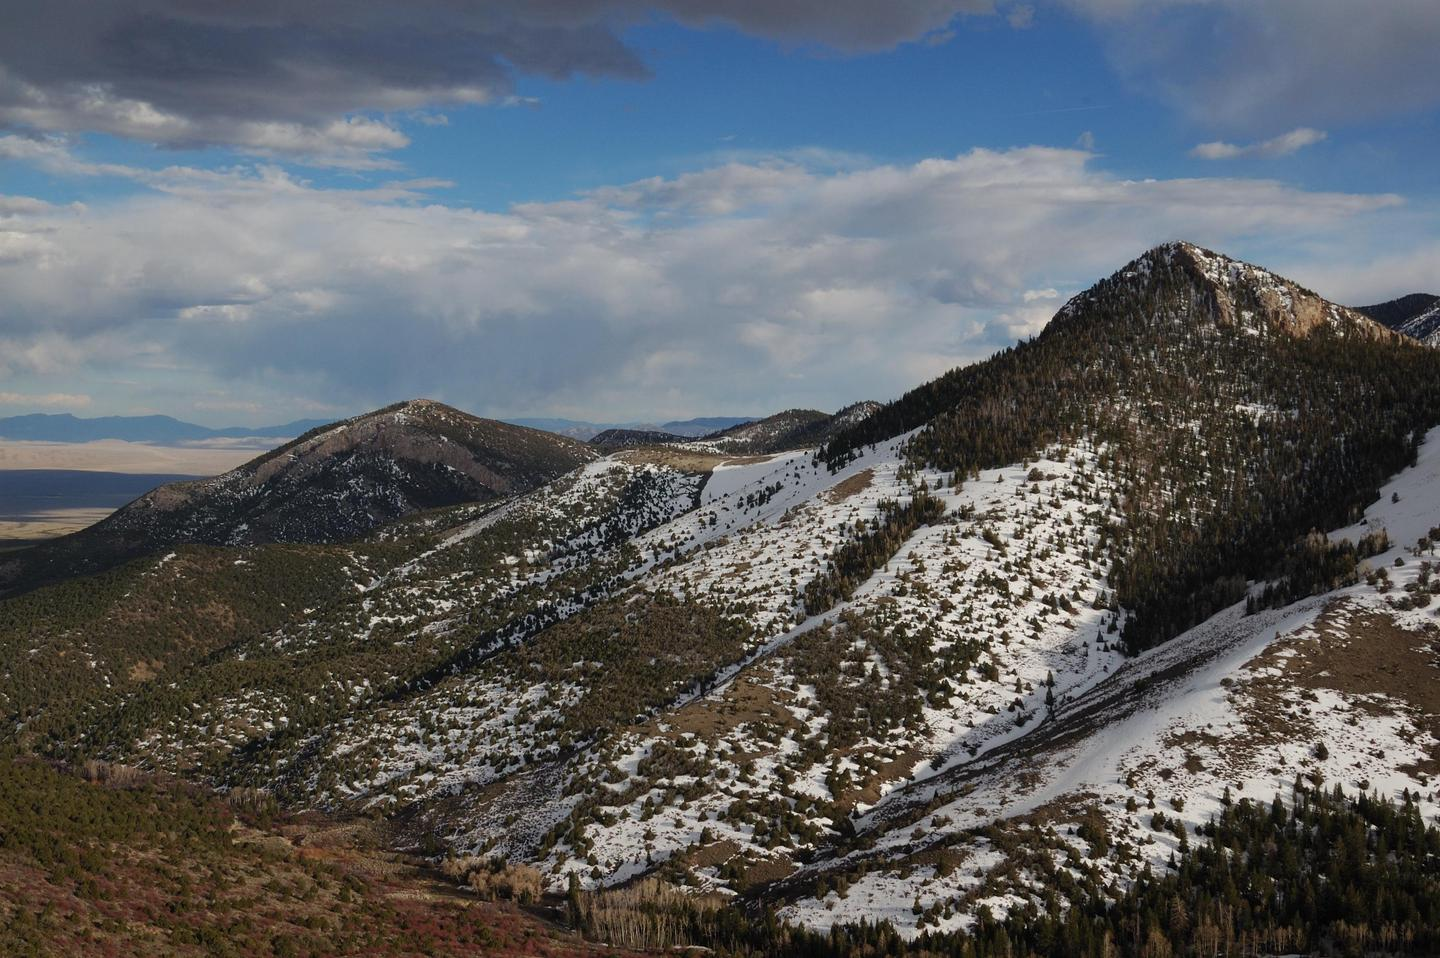 Snow Covered MountainsSnow can come early, even in the fall at Great Basin.